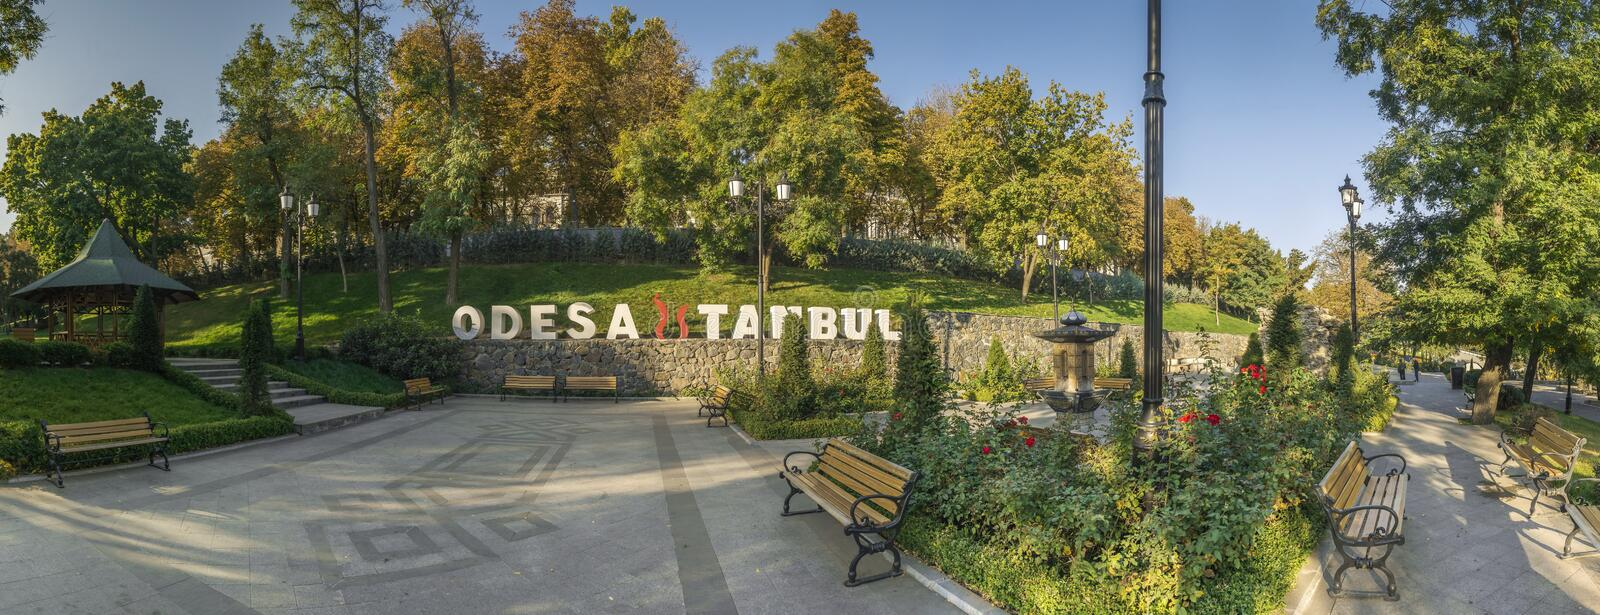 Istambul Park in Odessa, Ukraine at fall royalty free stock photography